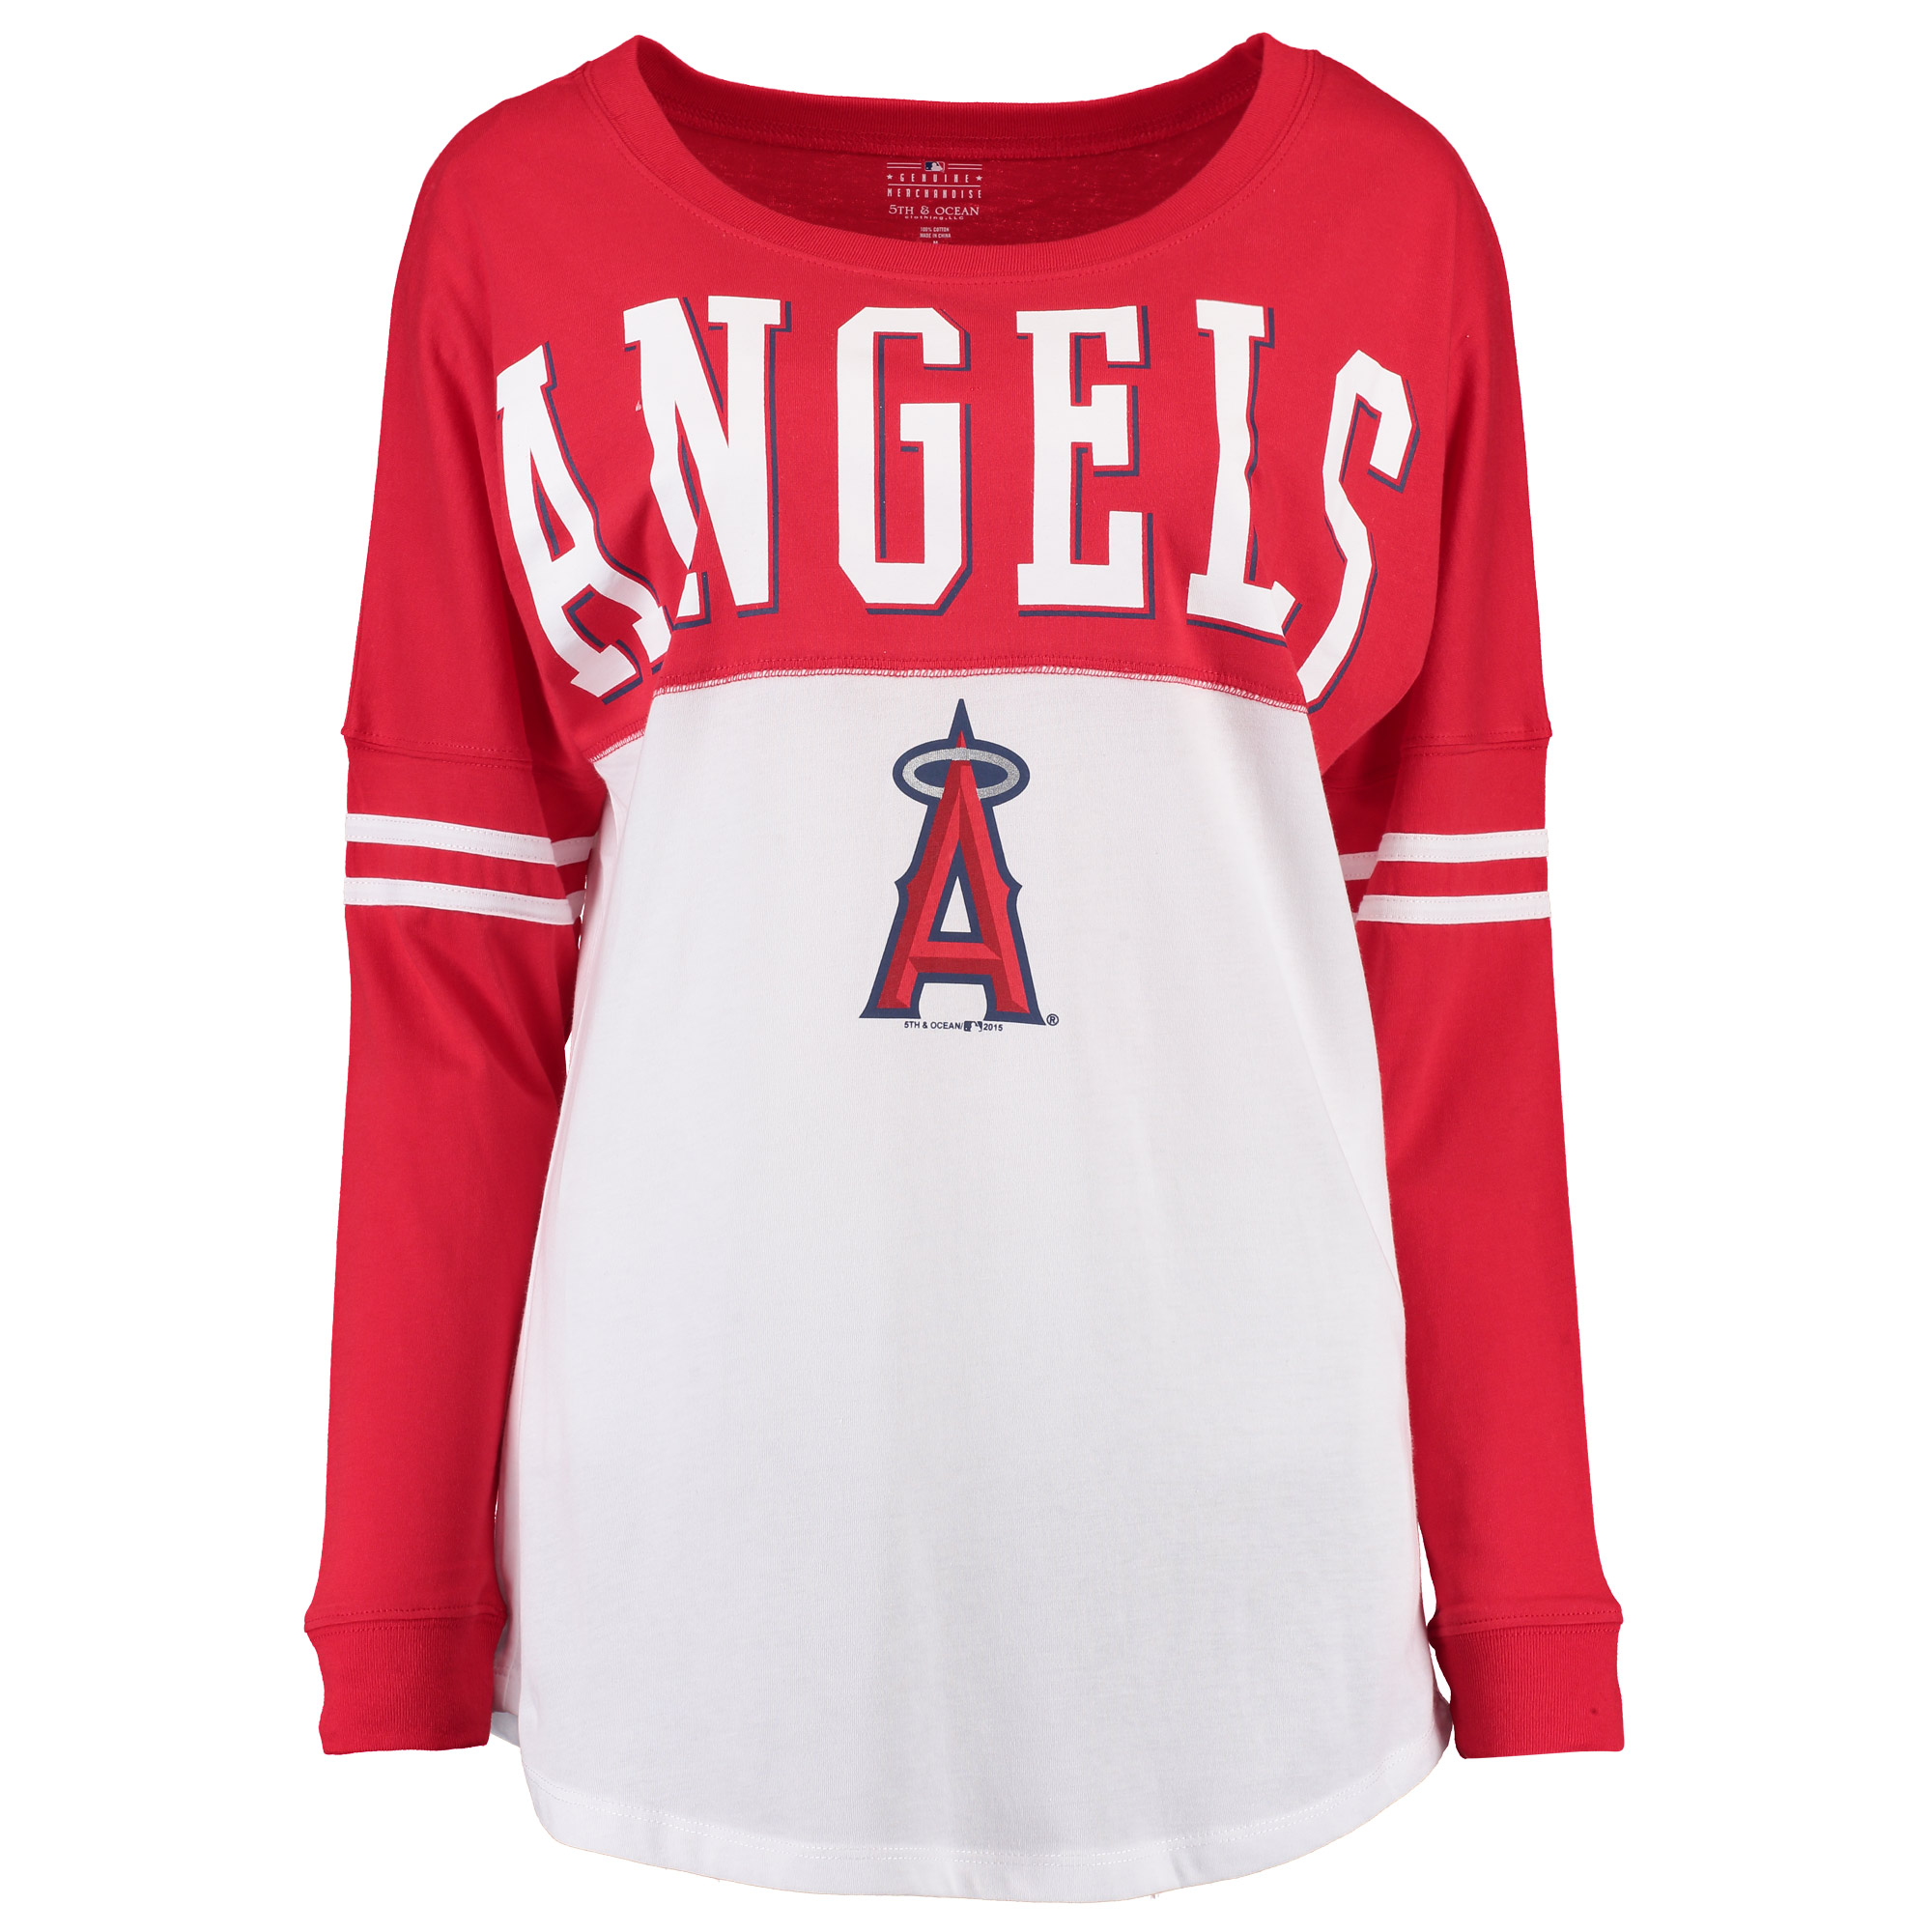 Los Angeles Angels 5th & Ocean by New Era Women's Baby Jersey Long Sleeve Varsity T-Shirt - Red/White